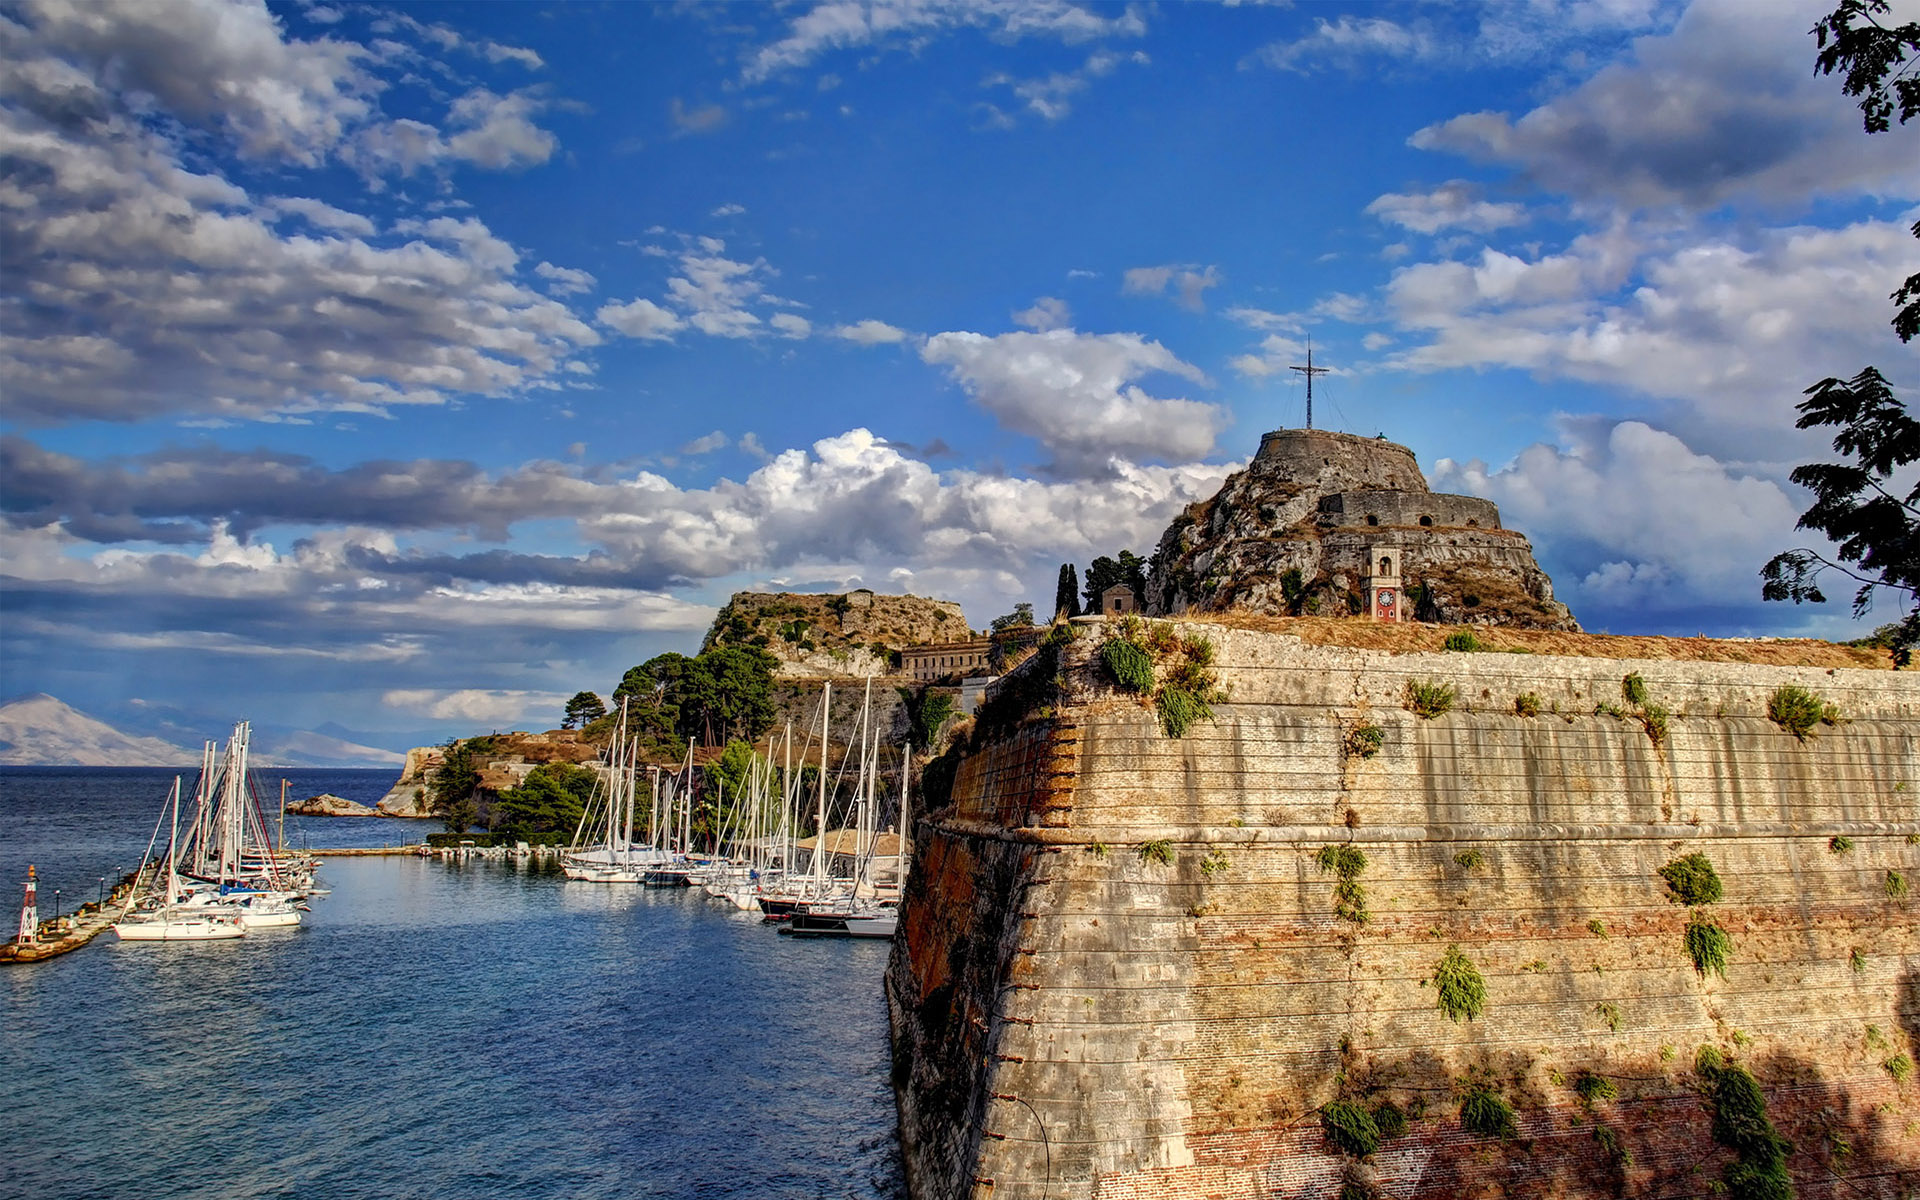 Yacht Charter Corfu island Sailing in Greece and GreekSunYachts